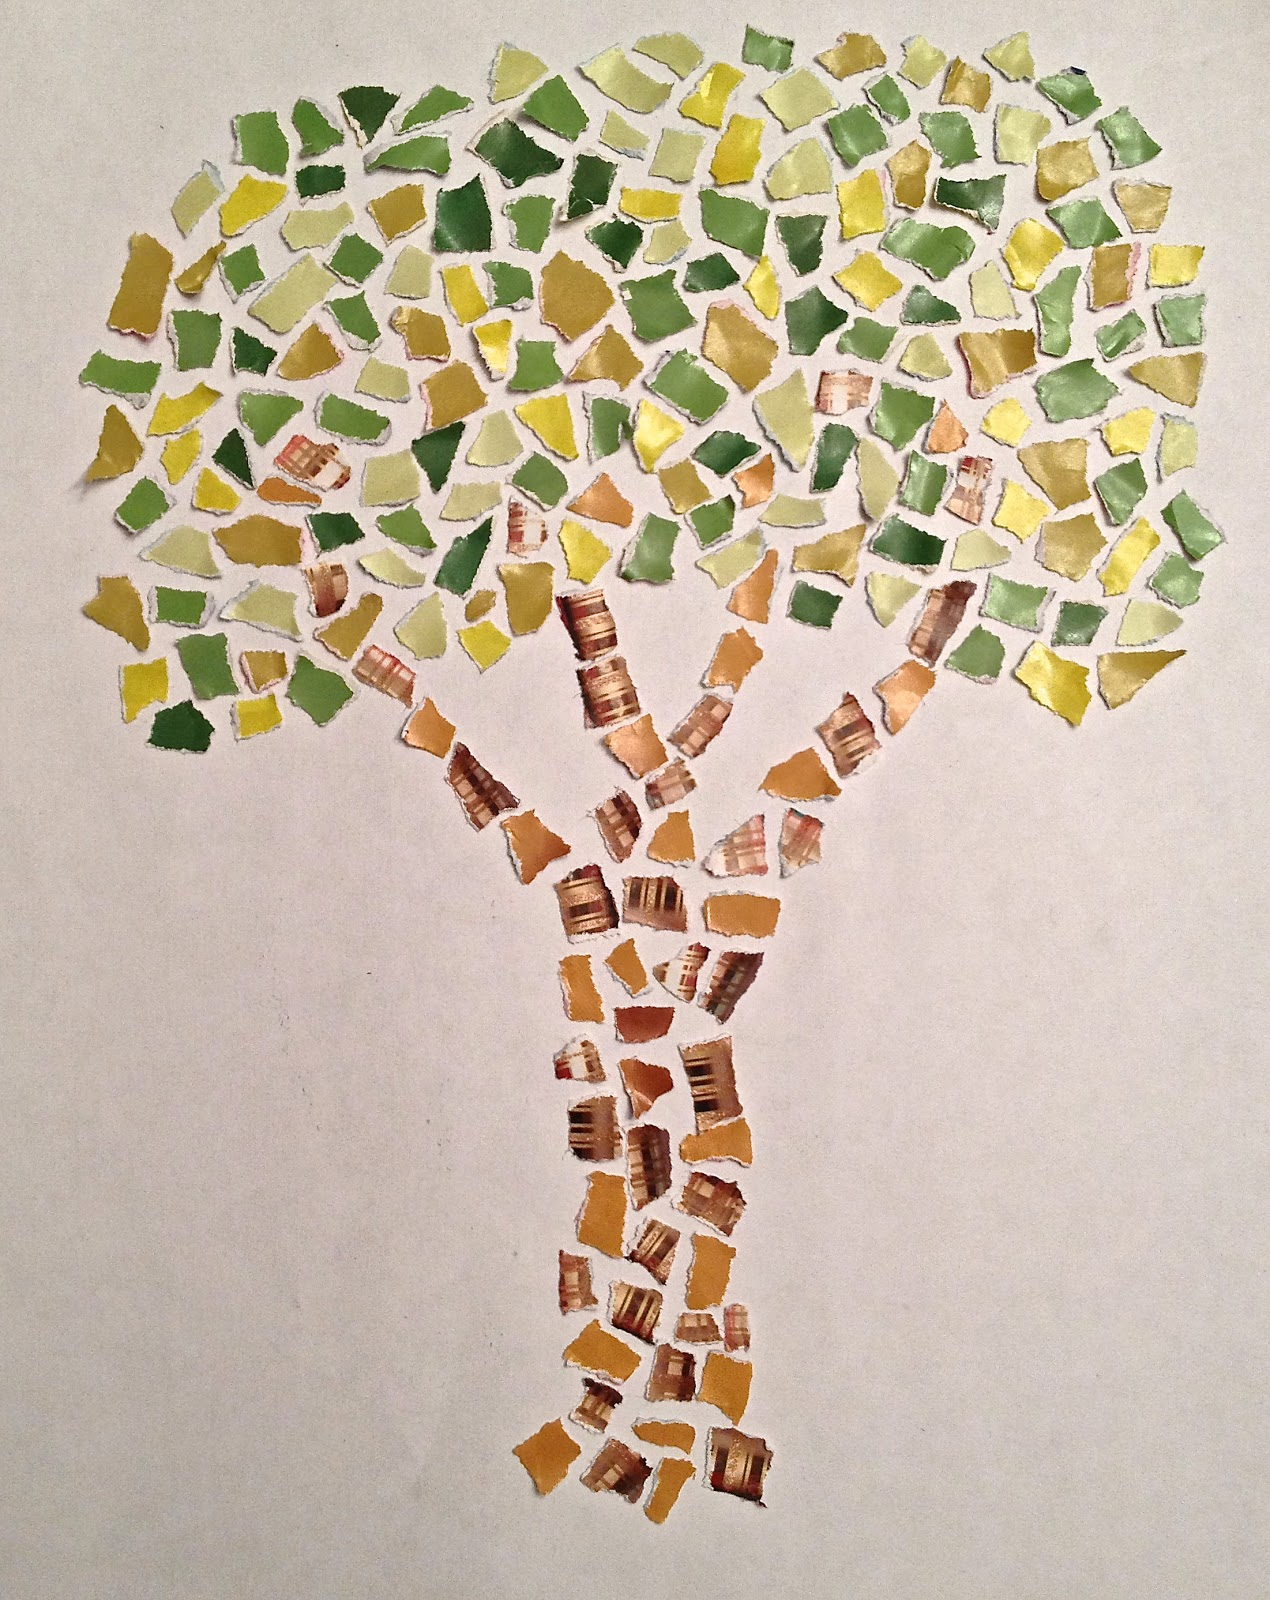 The daily tree 54 365 mosaic tree